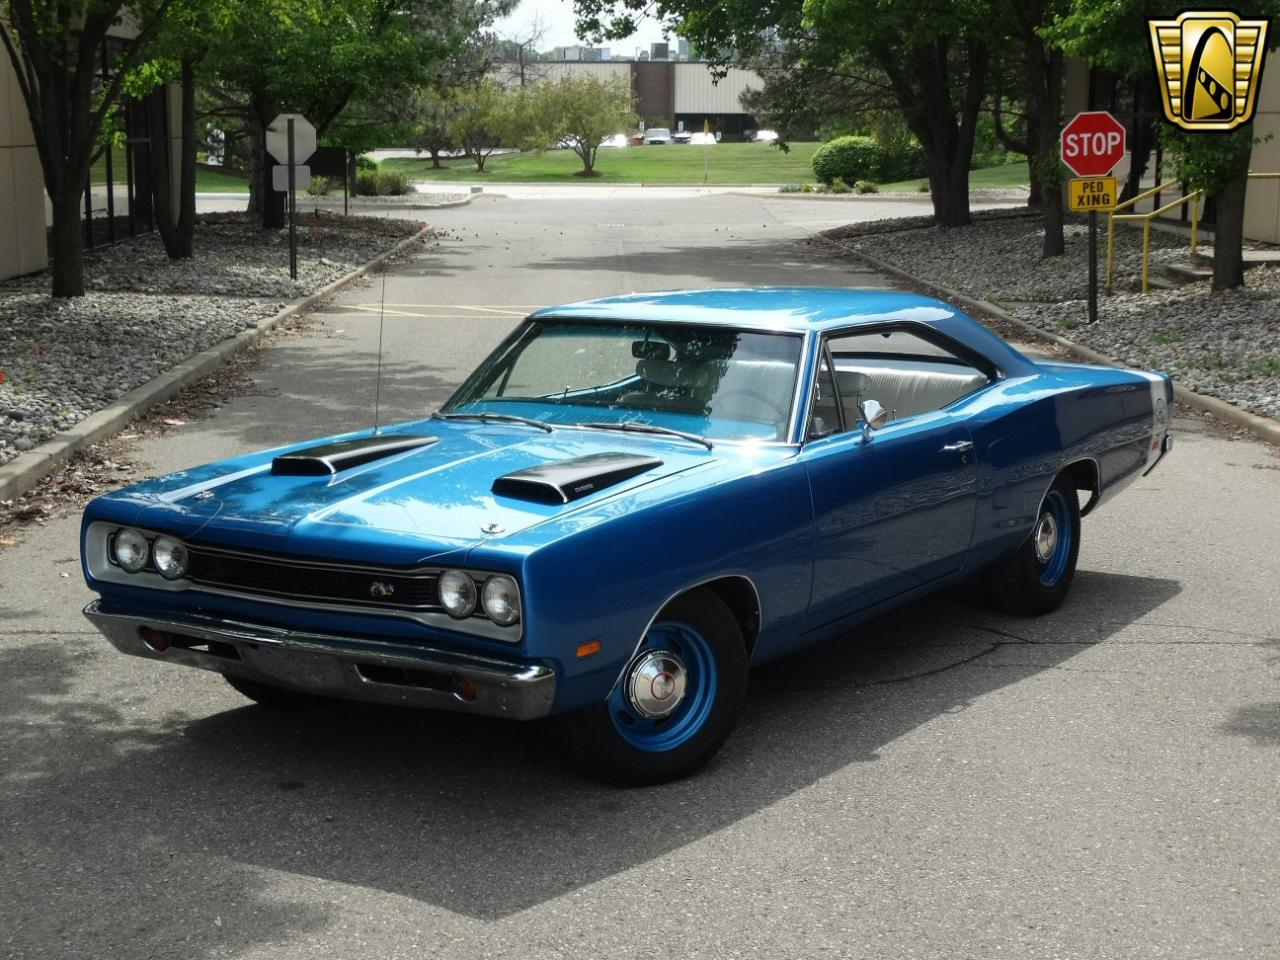 1969 Dodge Super Bee 42300 Miles B7 Blue Coupe 383 Cid 4 Speed Coronet A12 Prevnext